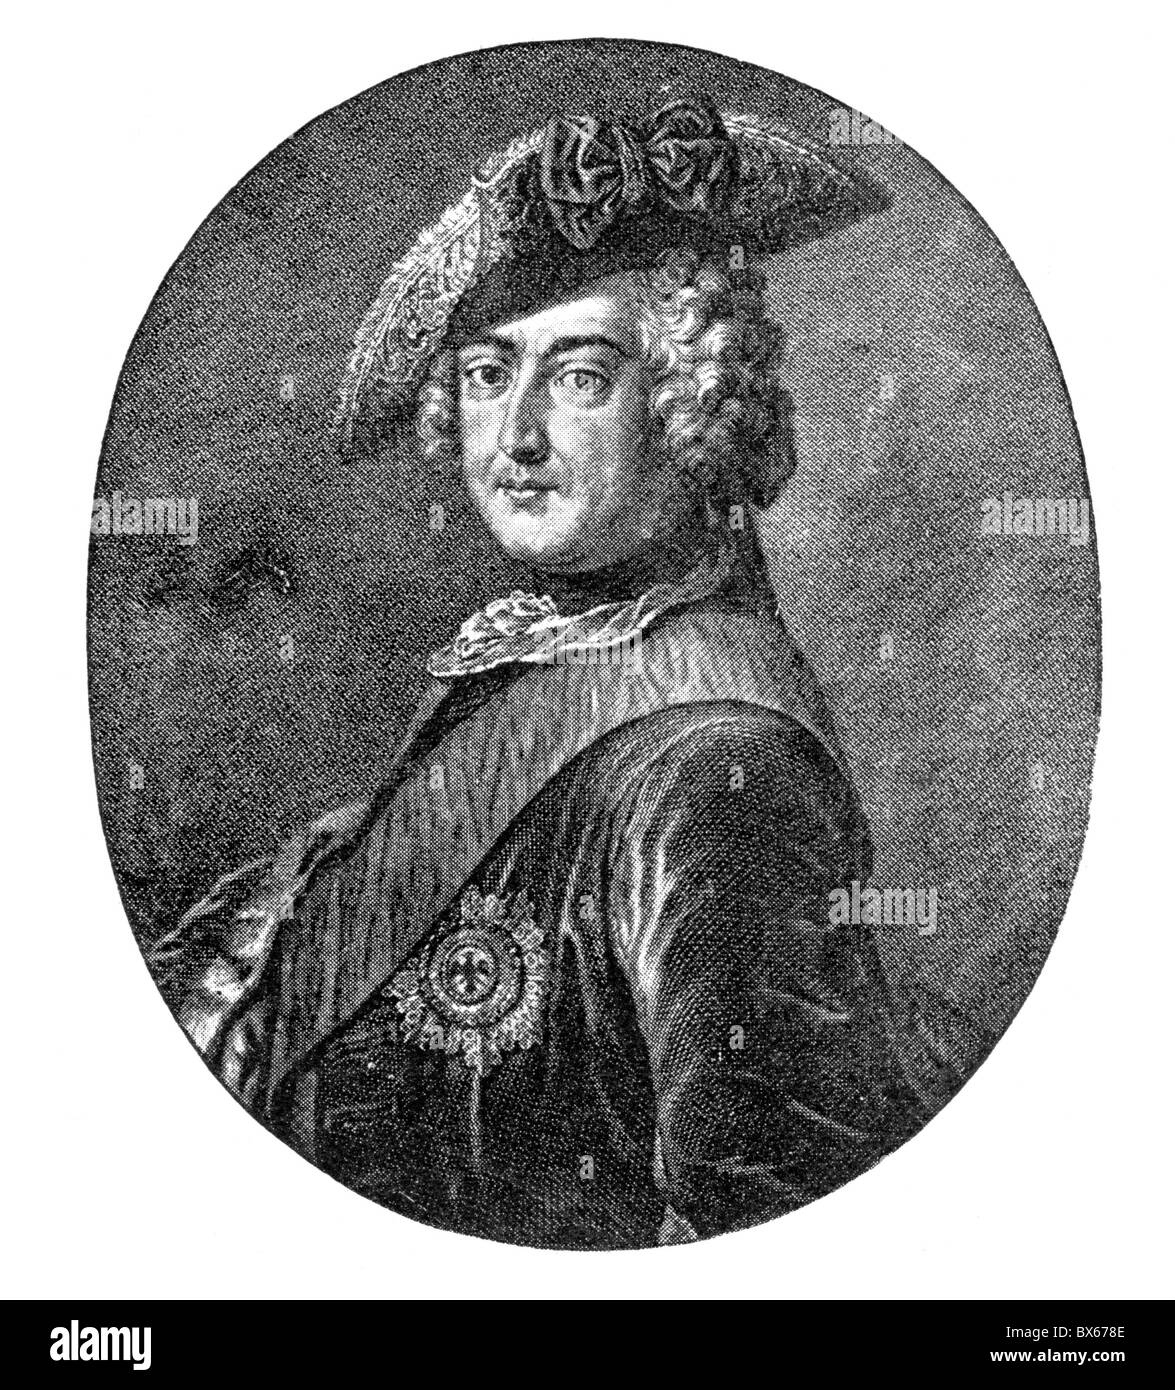 Frederick II, King of Prussia and Elector of Brandenburg; Black and White Illustration; - Stock Image